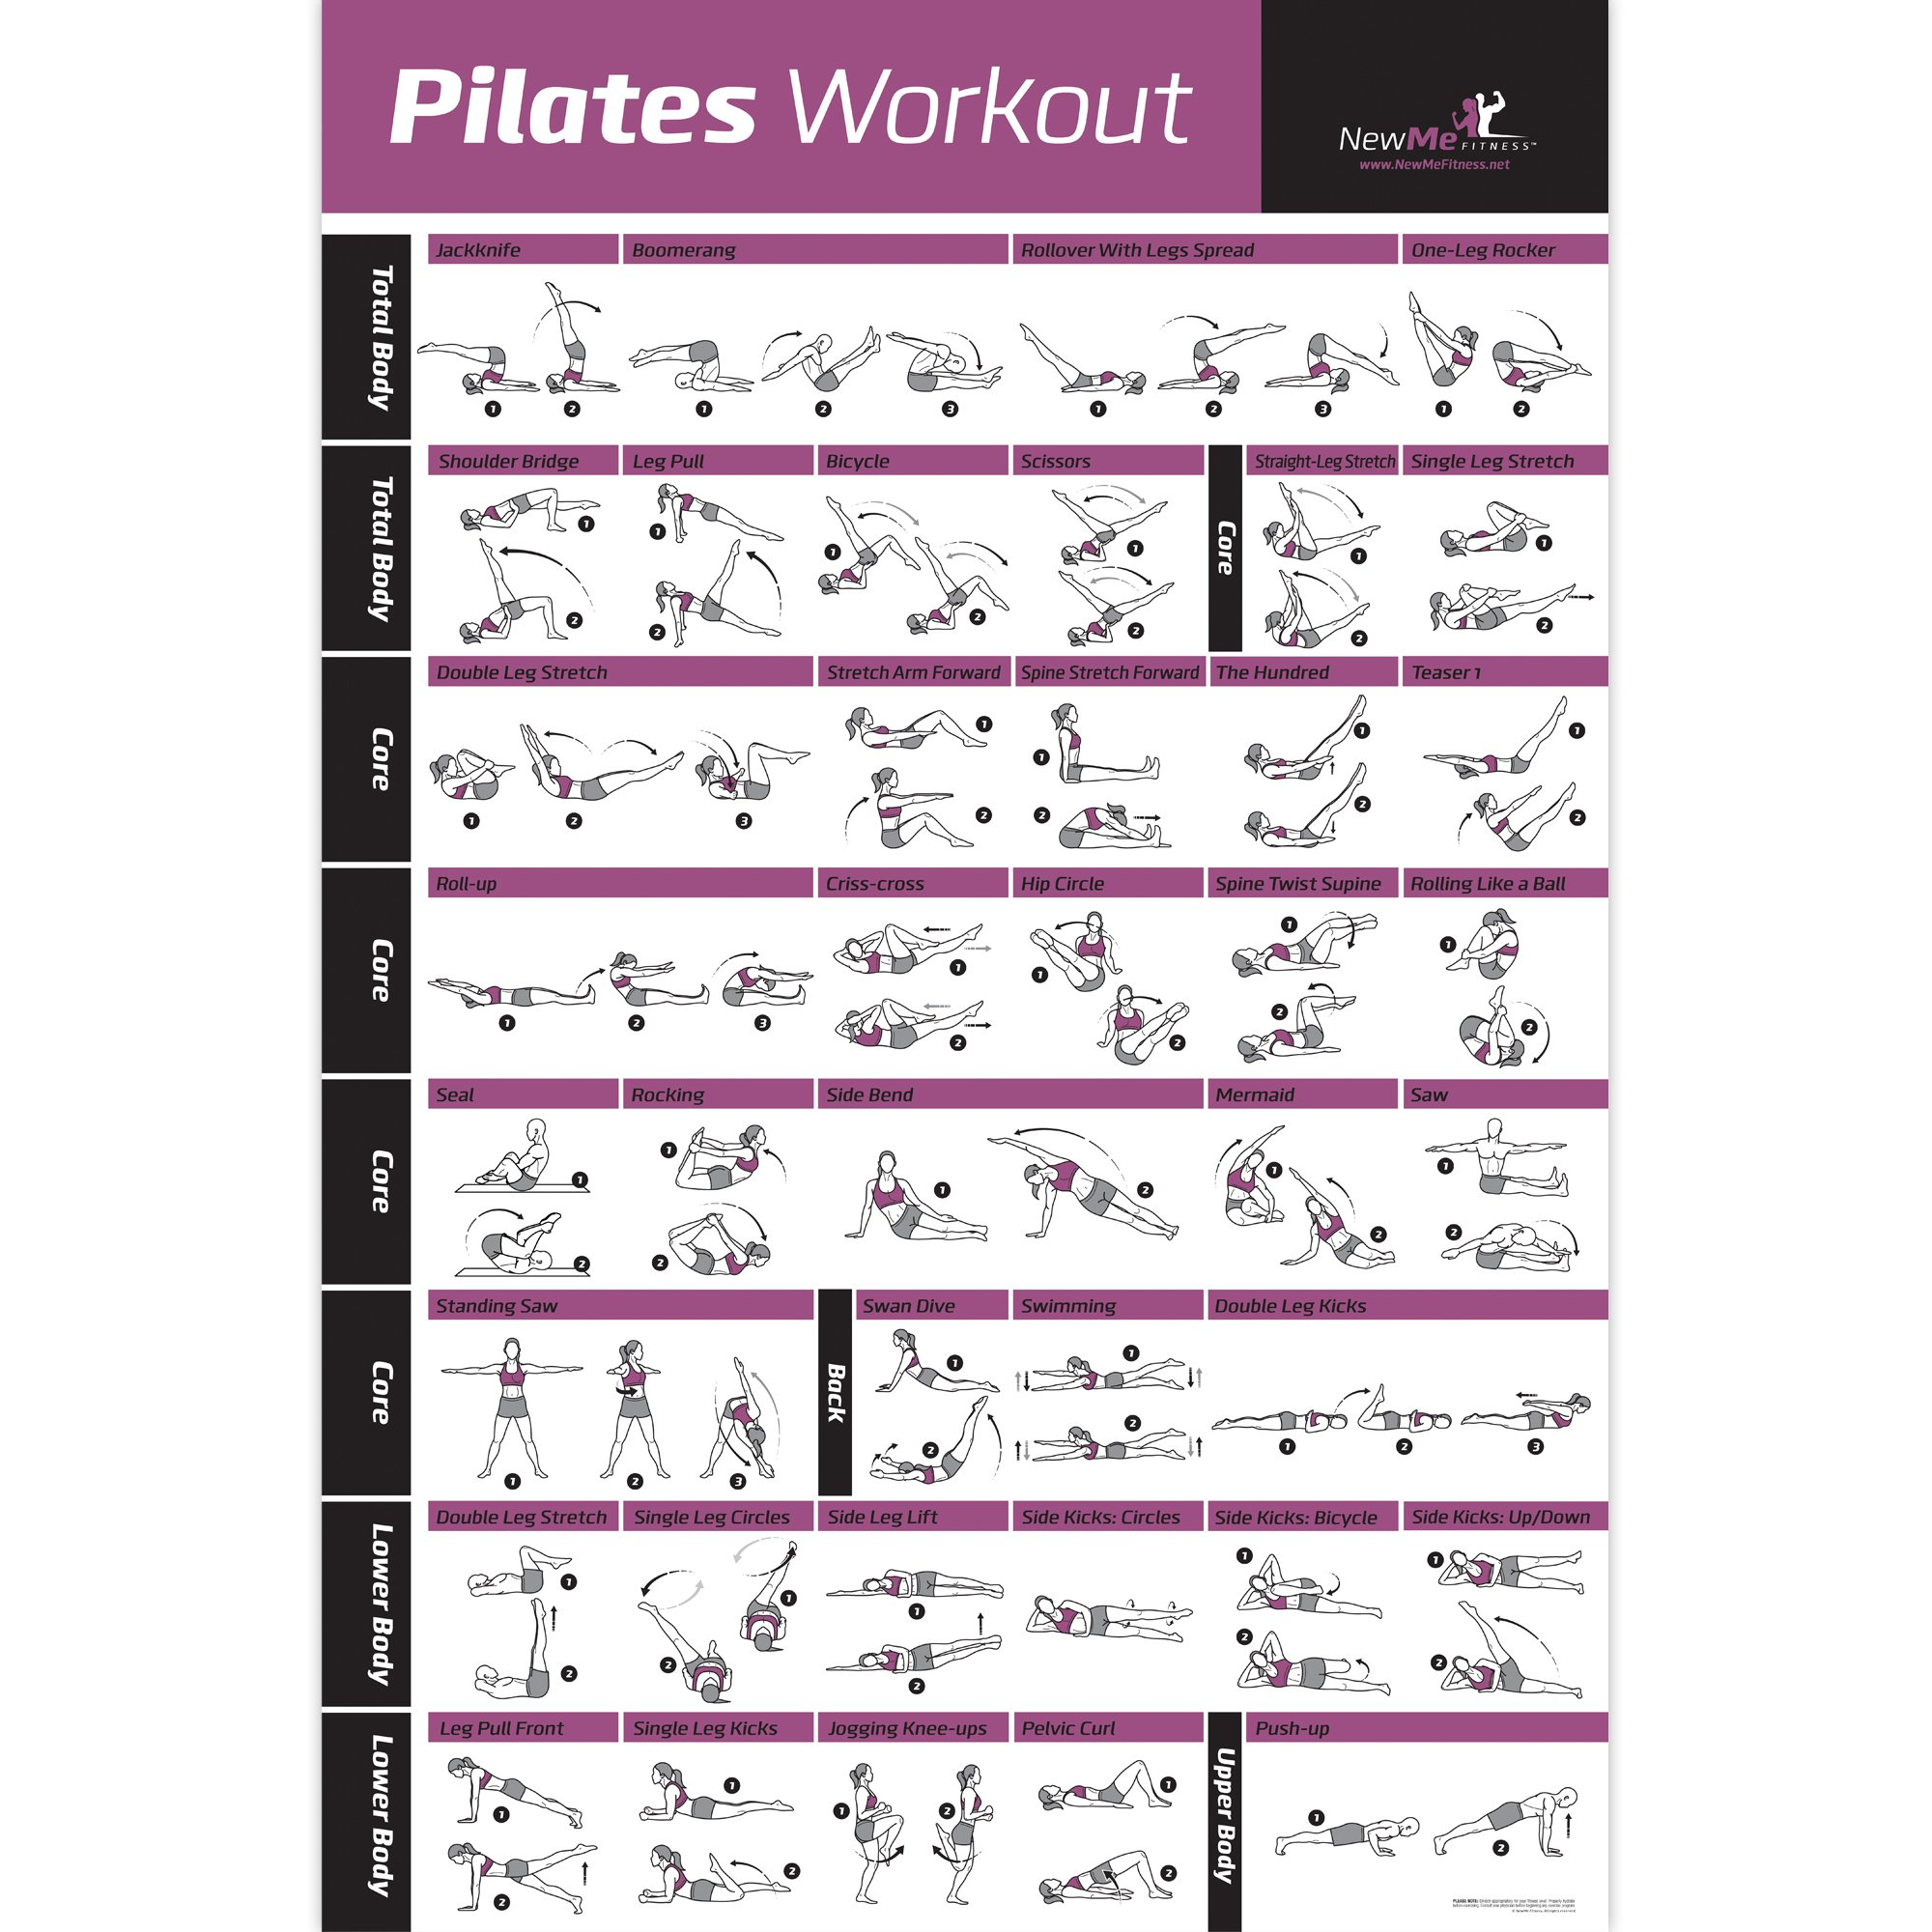 NewMe Fitness PILATES MAT EXERCISE SERIES POSTER – Easy to Follow Mat Sequence - Joseph Pilates Return to Life Exercises - 20'' x 30''